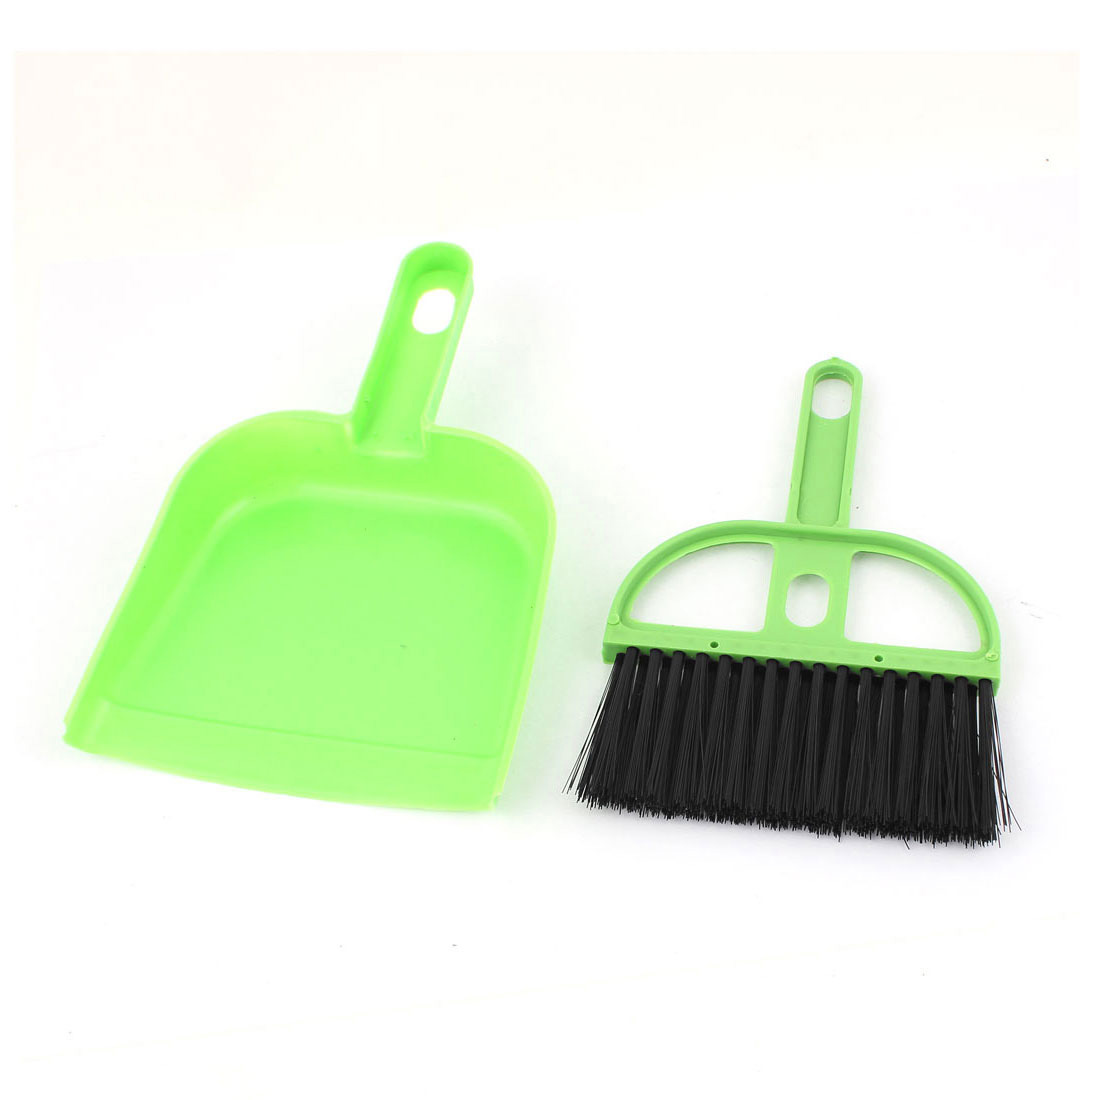 Portable Home PC Desk Computer Keyboard Duster Cleaning Cleaner Brush Green